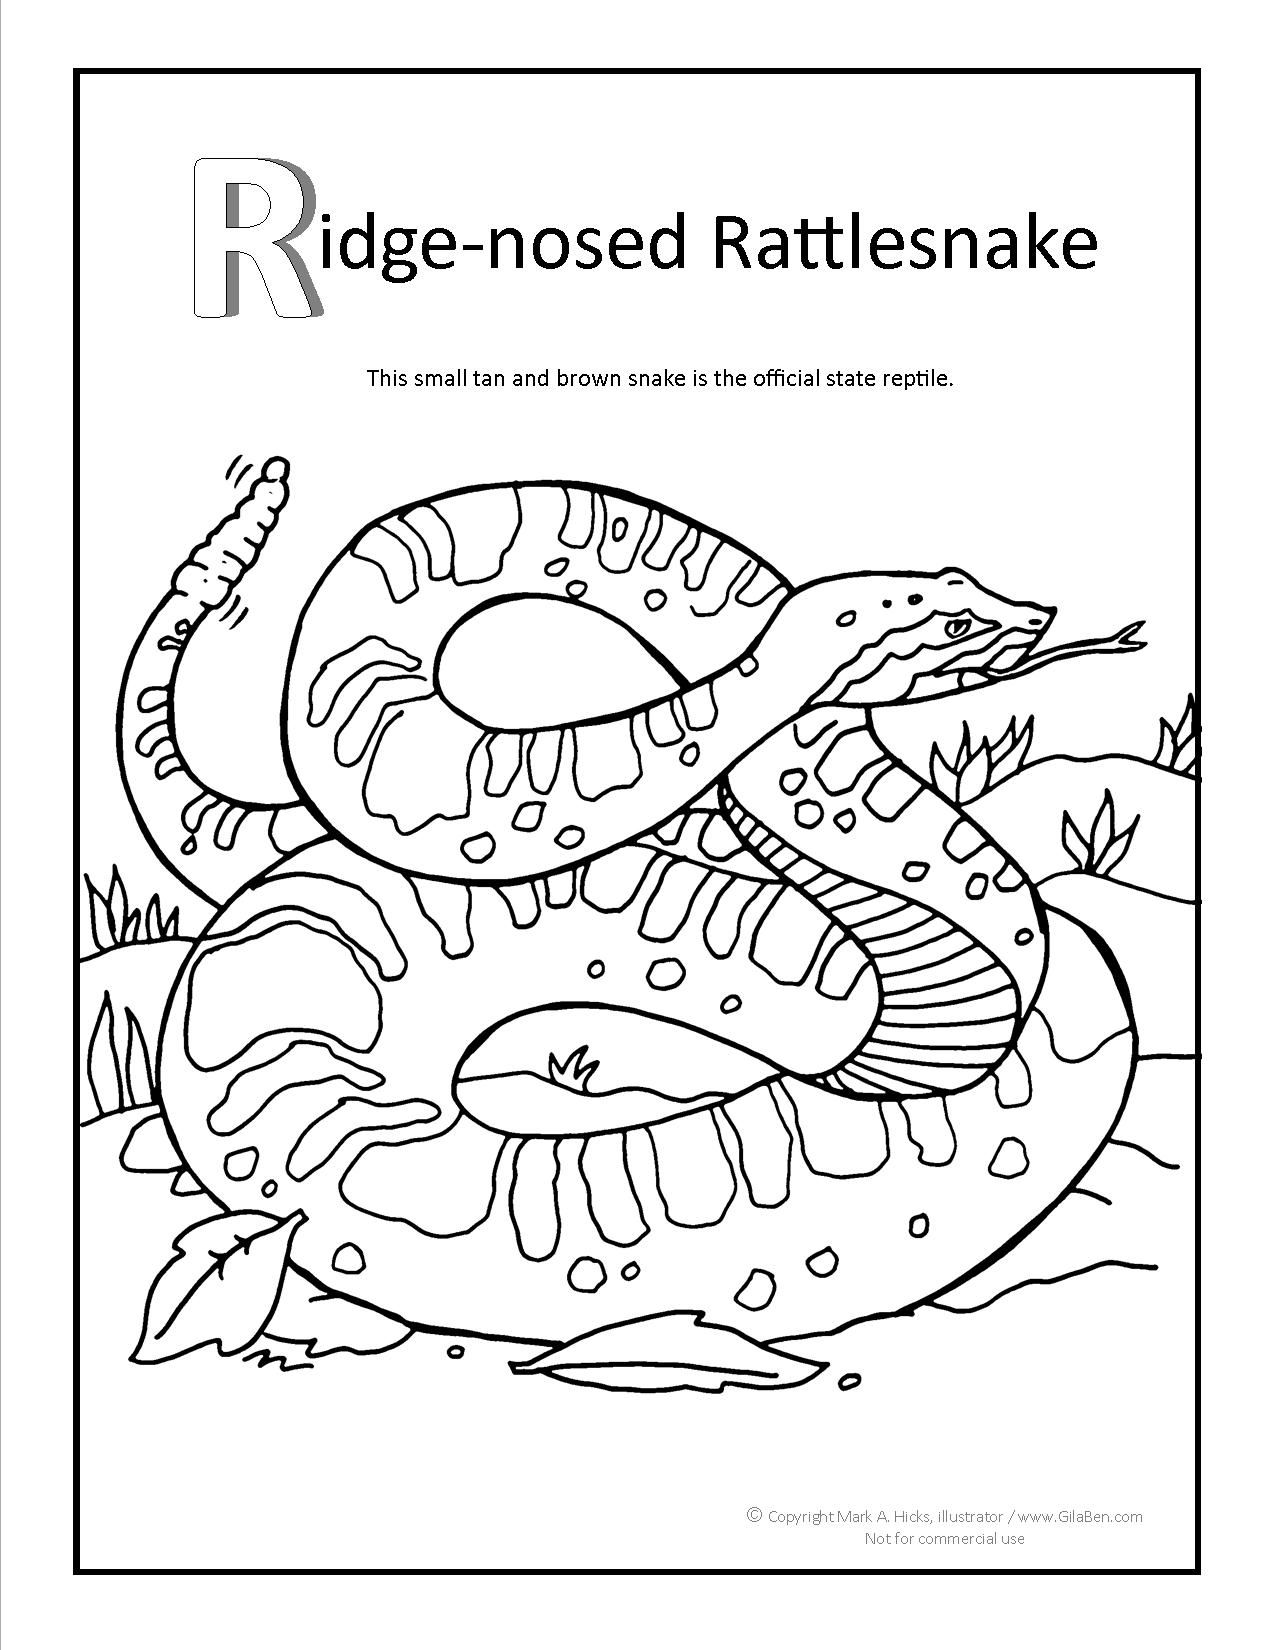 ridge nosed rattlesnake coloring page at gilaben com arizona